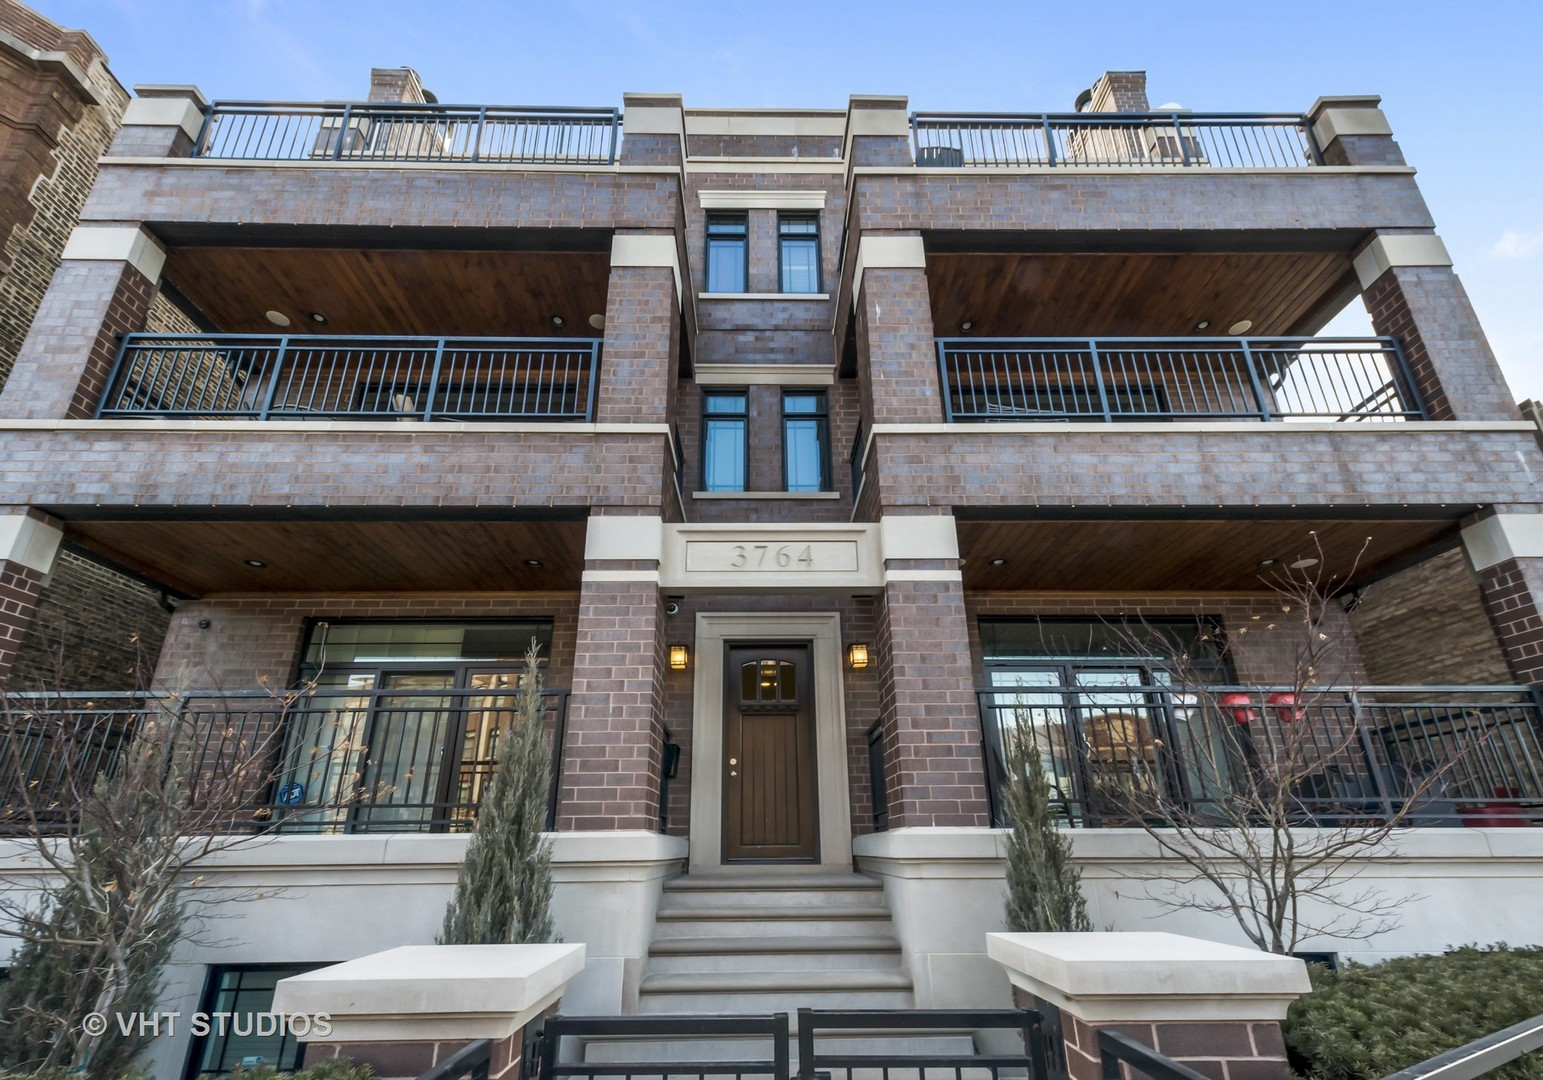 3764 Clark Unit Unit 3n ,Chicago, Illinois 60613